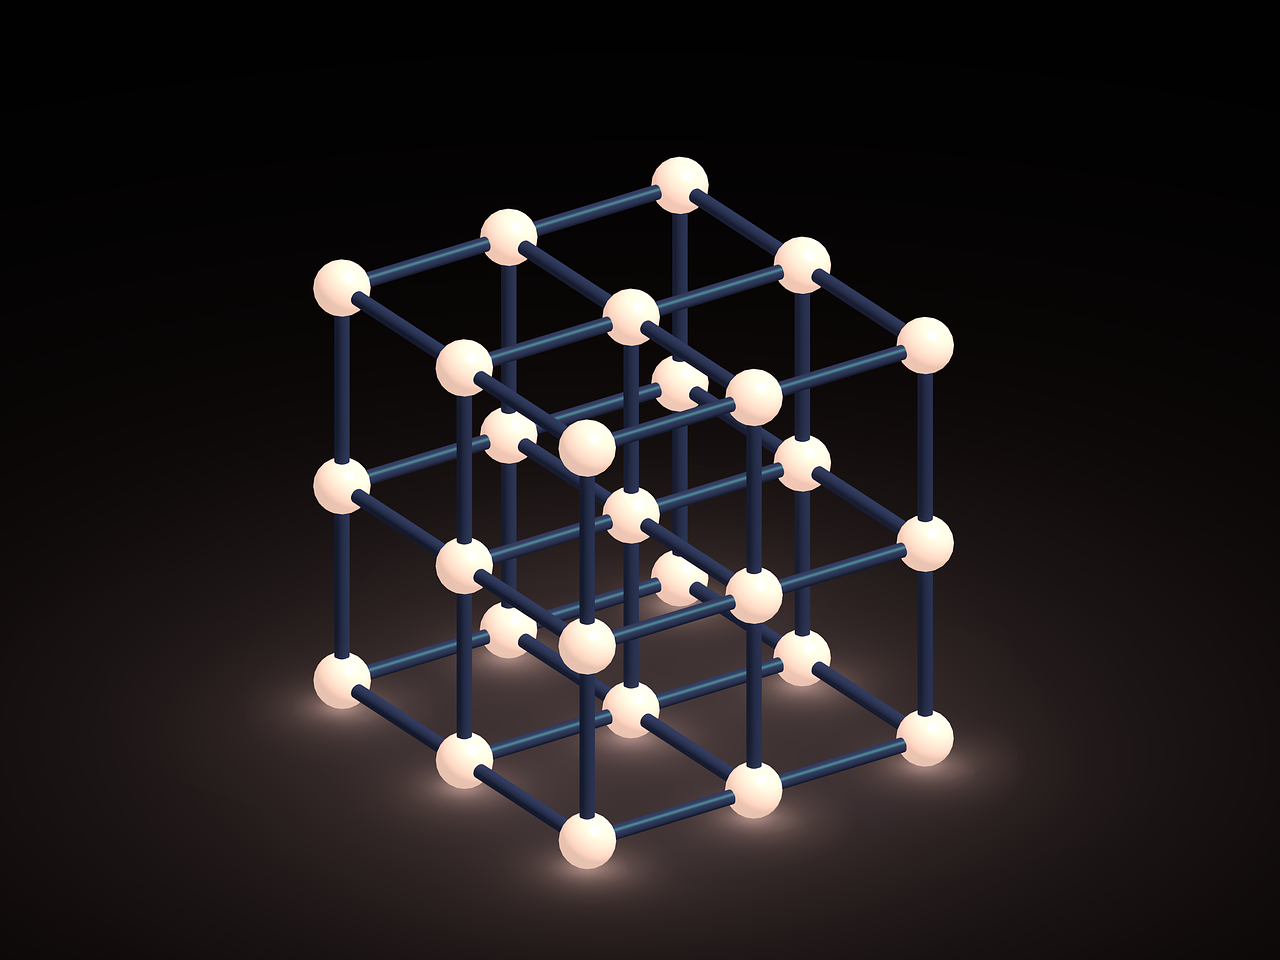 Image of atoms